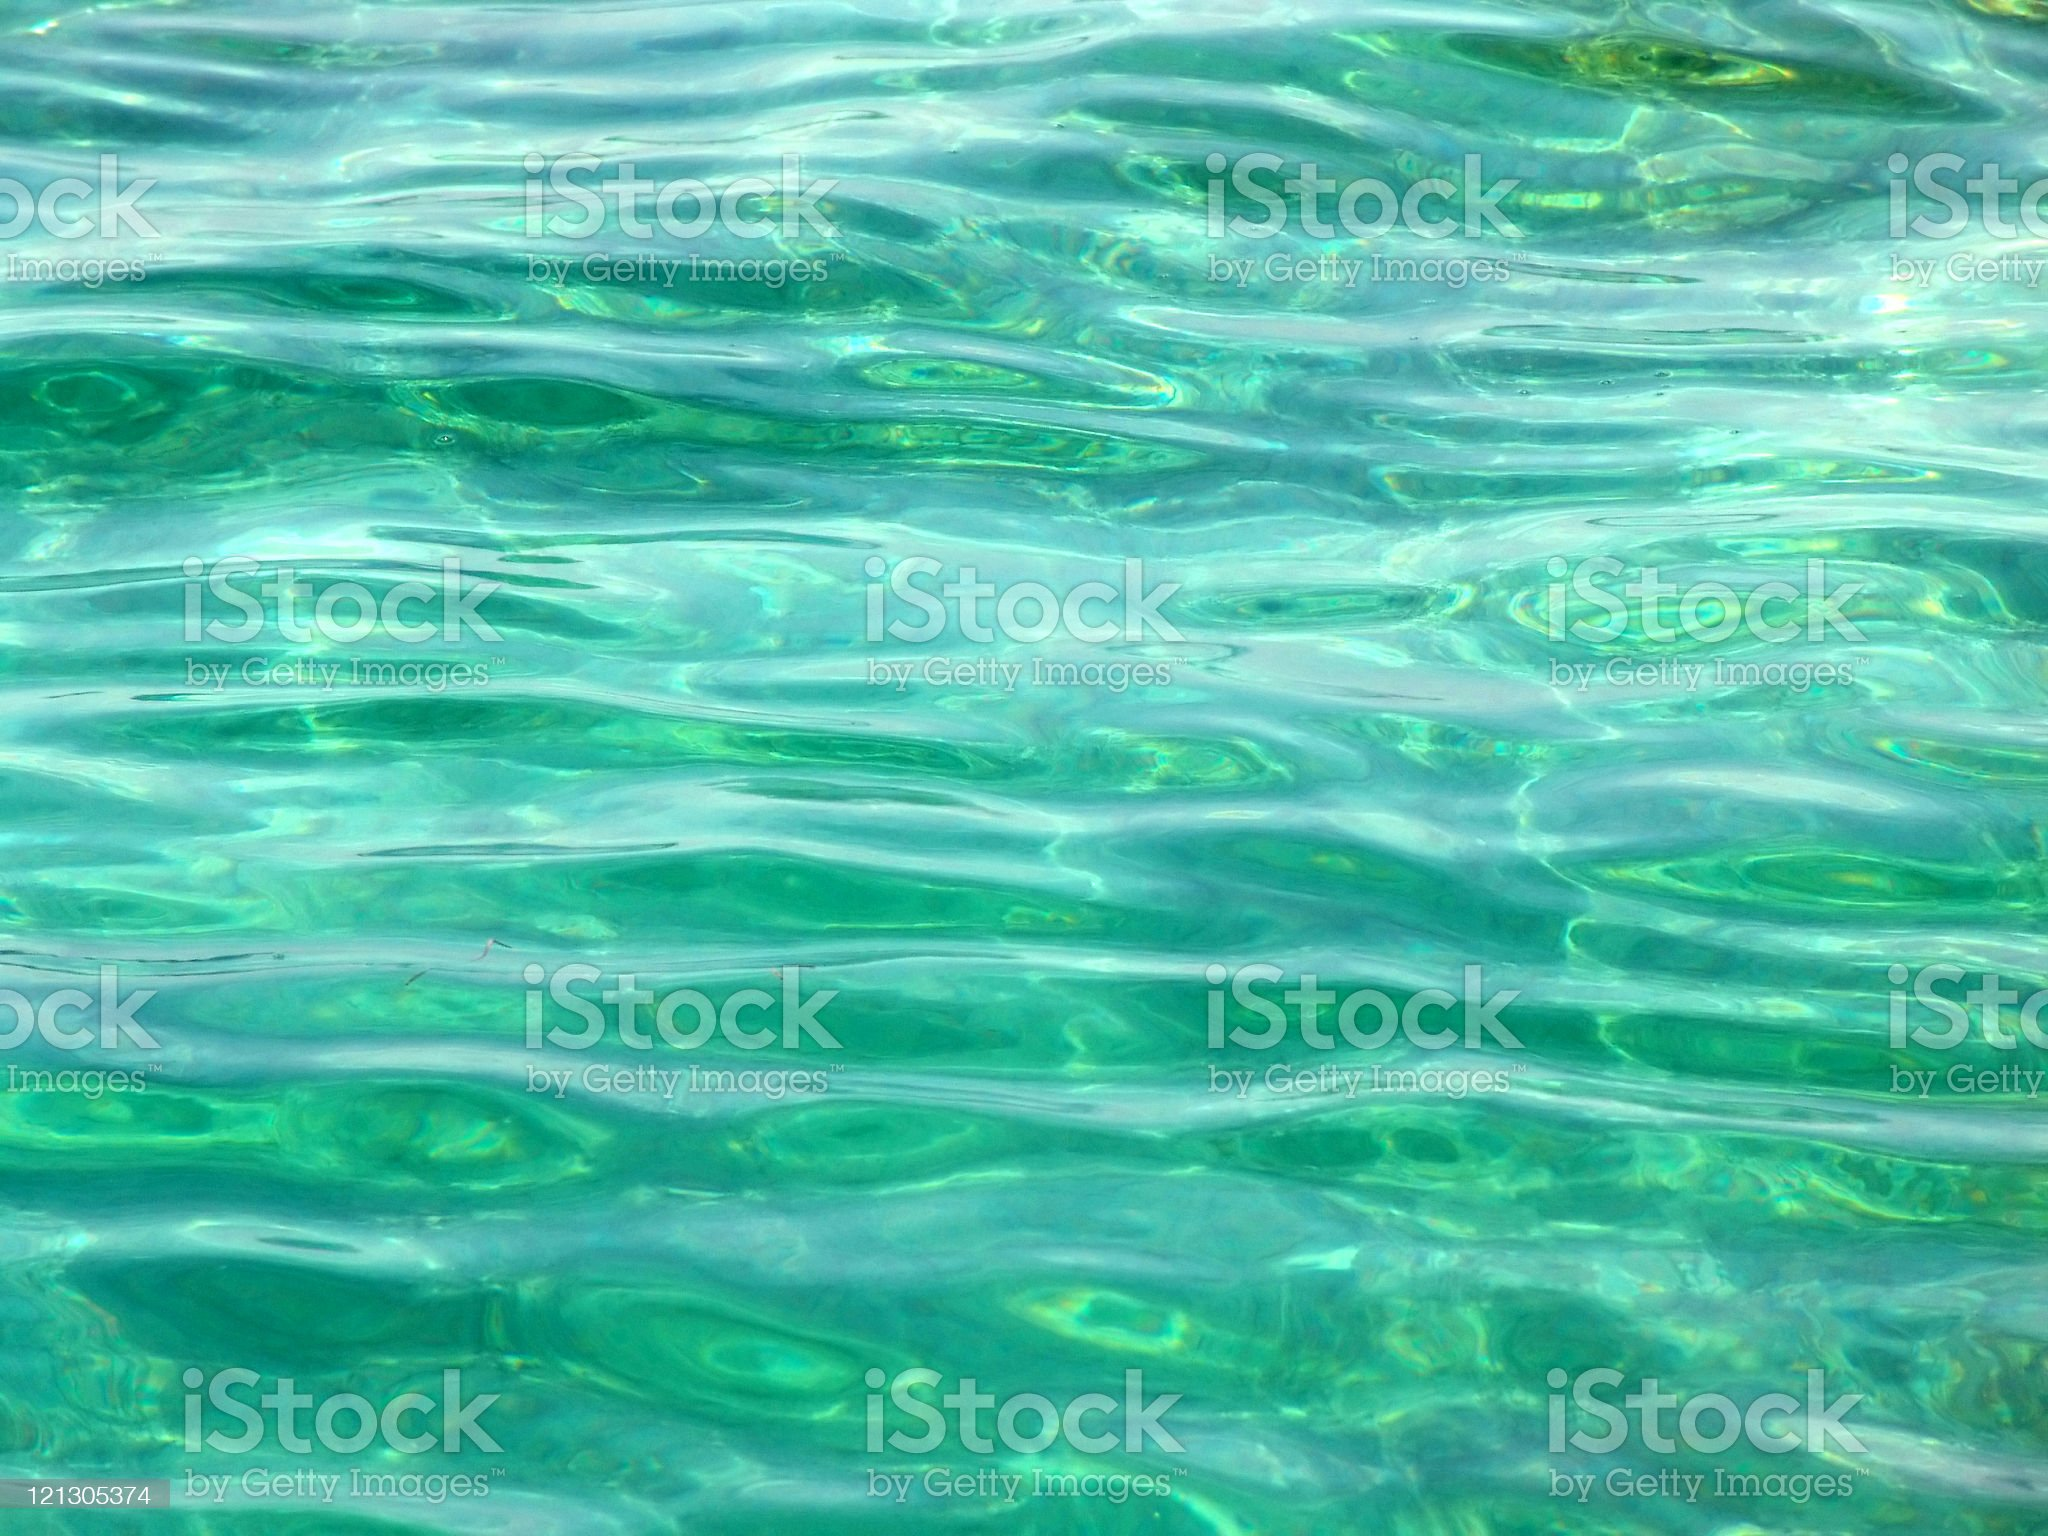 A close-up of green wavy ocean water royalty-free stock photo